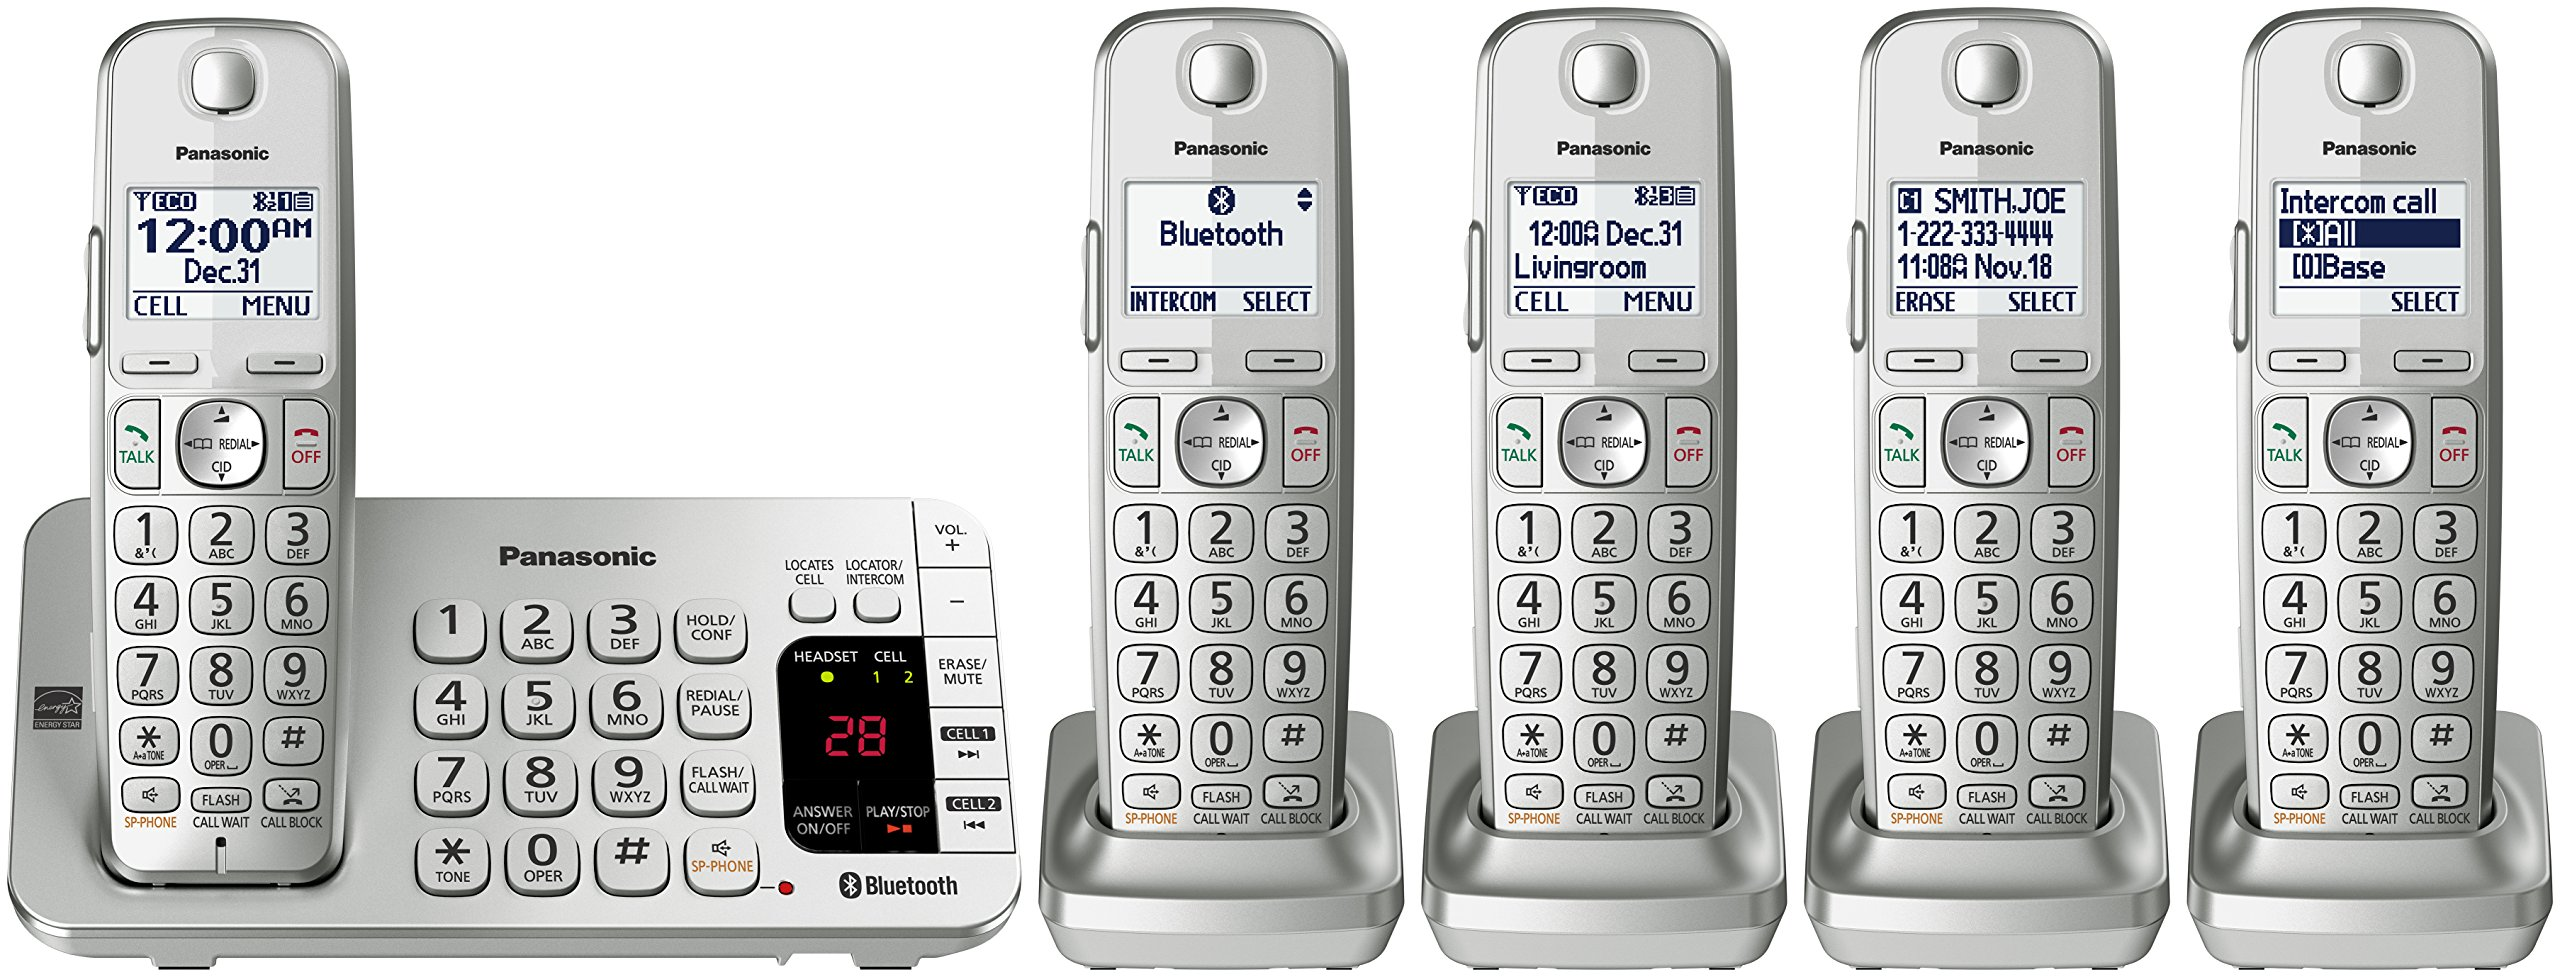 Panasonic KX-TGE475S Link2Cell Bluetooth Cordless Phone with Answering Machine- 5 Handsets by Panasonic